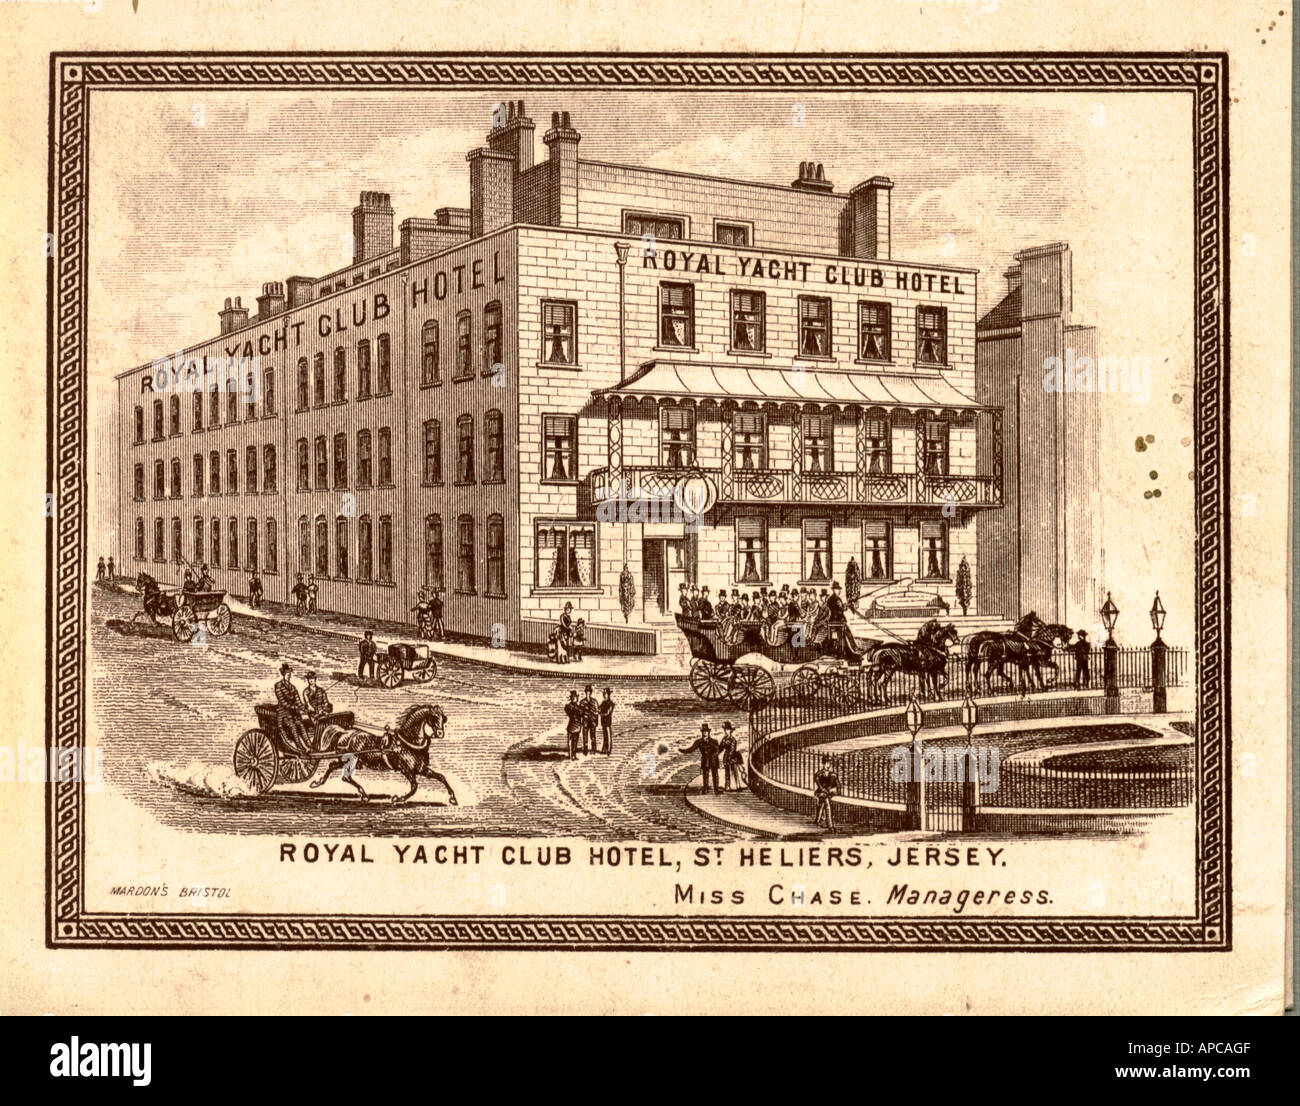 Brochure of Royal Yacht Club Hotel, St. Helier, Jersey, Channel Islands circa 1888 - Stock Image